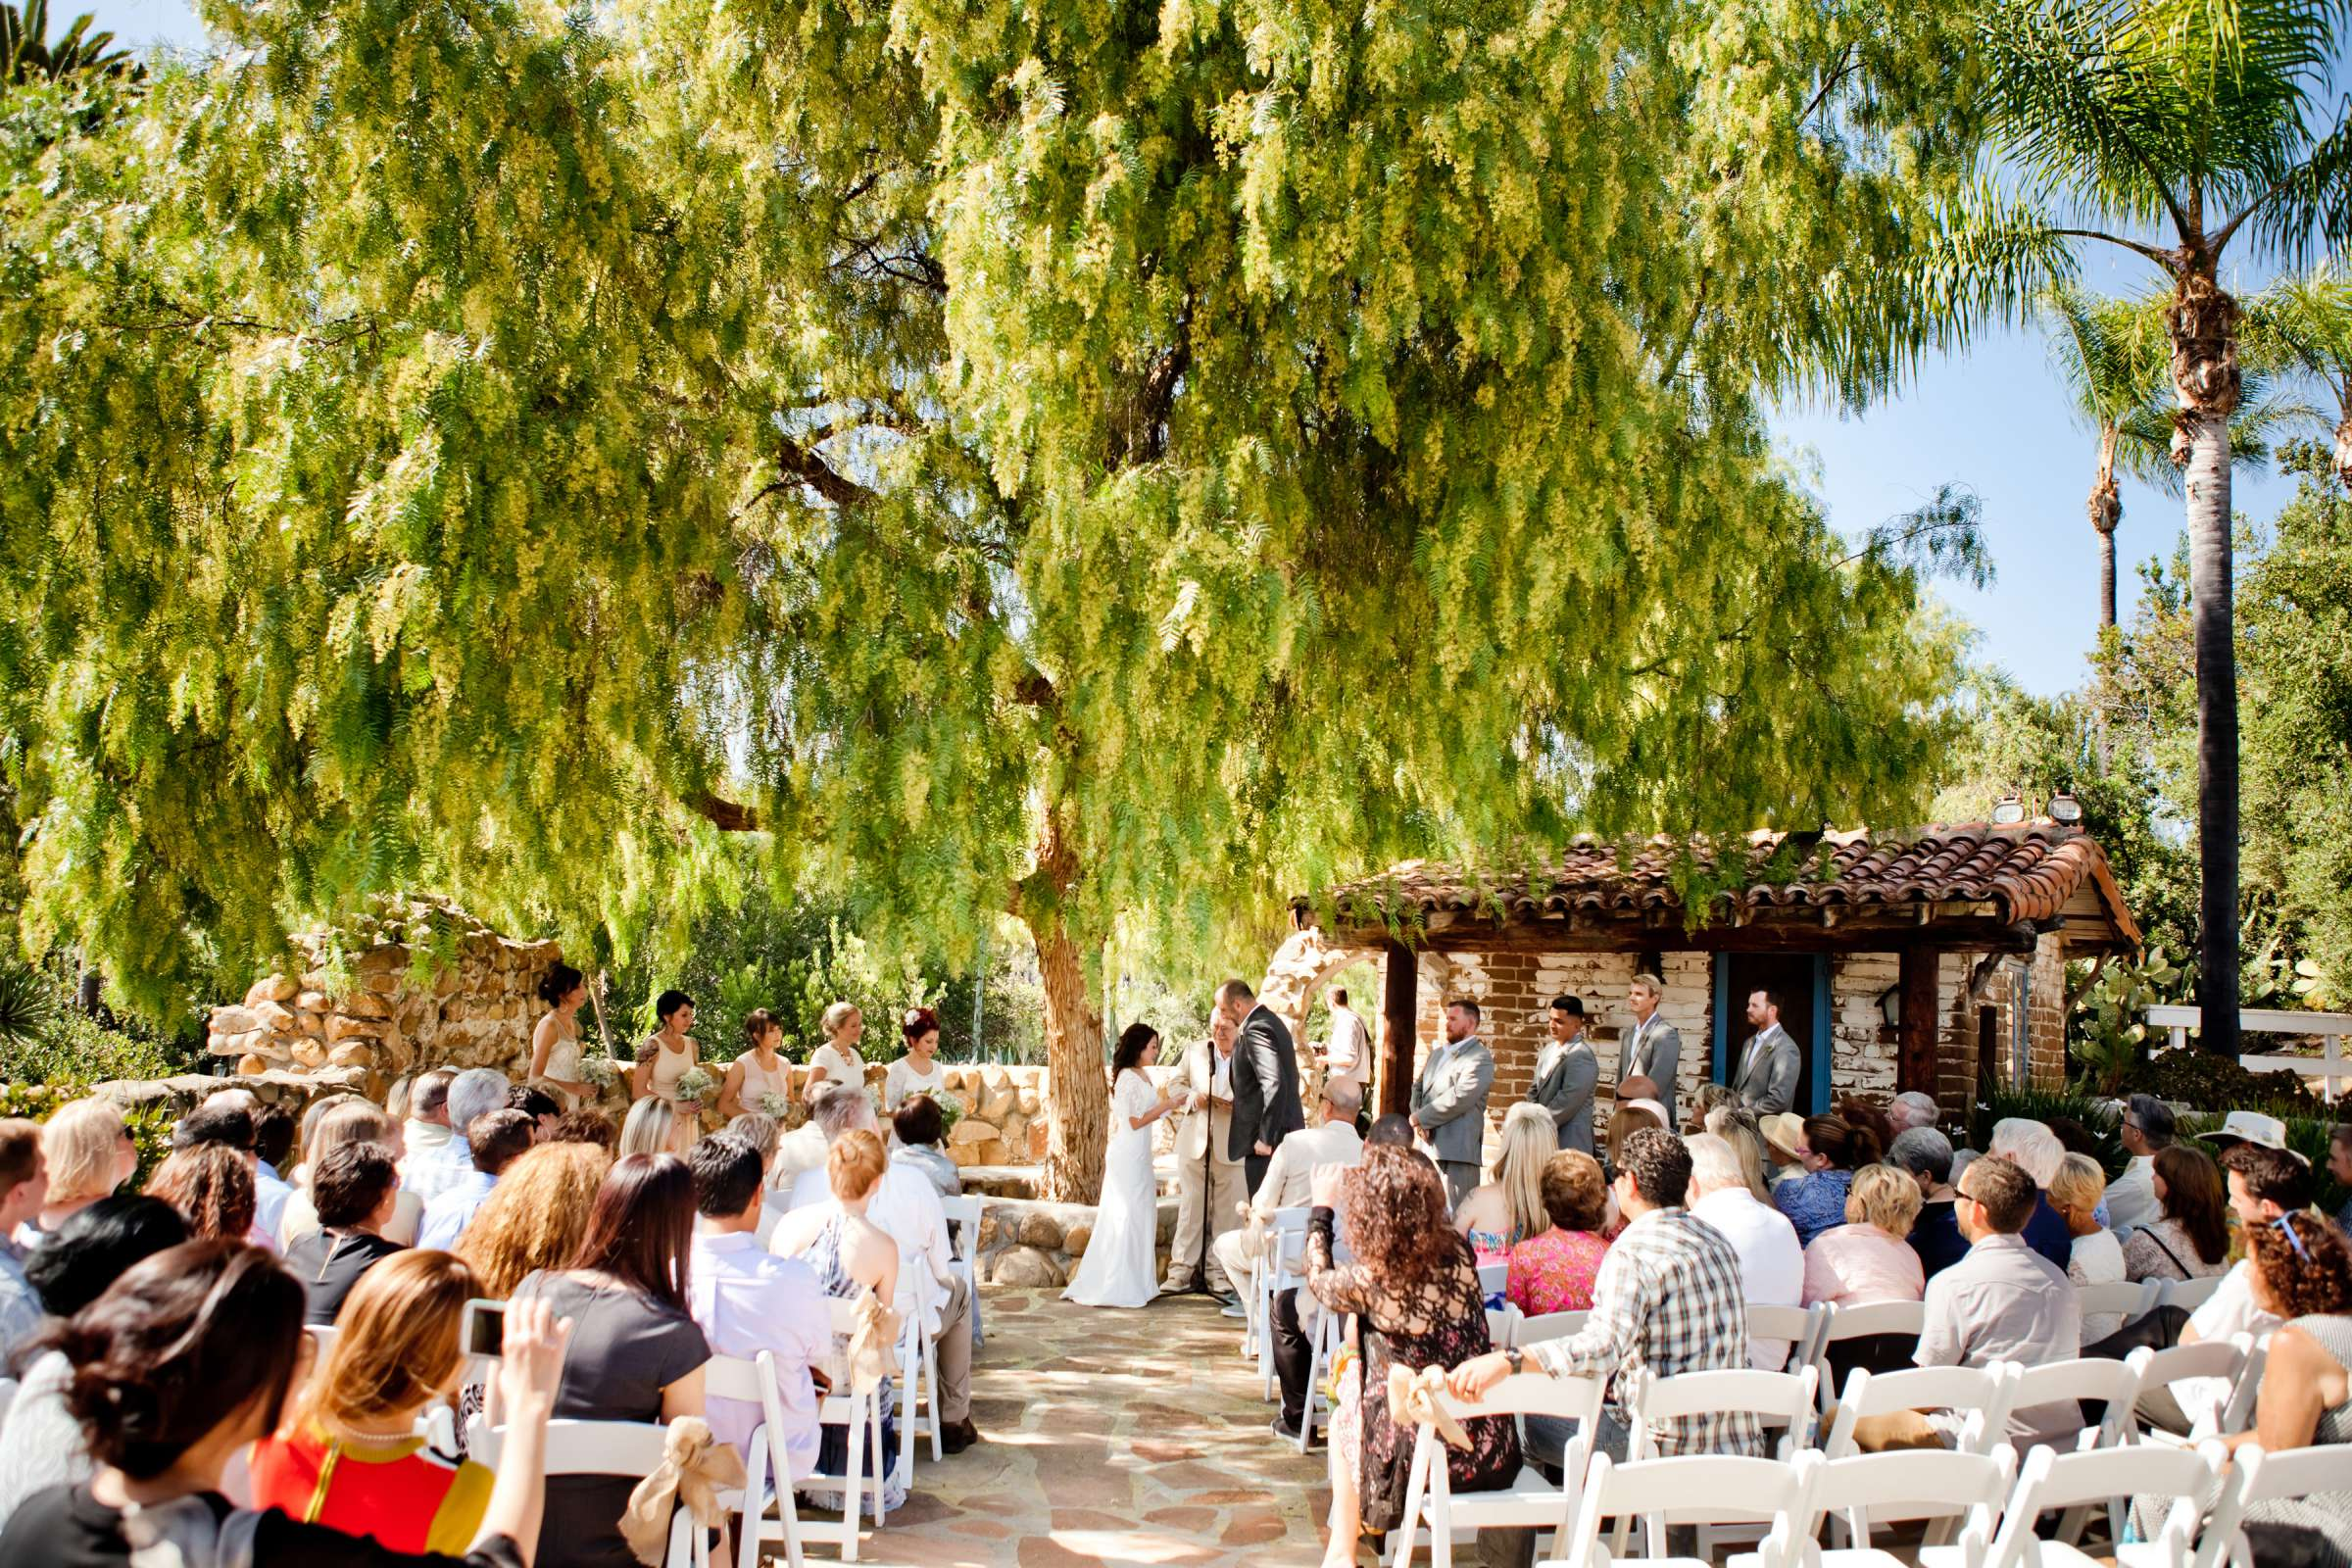 Leo Carrillo Ranch Wedding coordinated by Weddings by Lisa Nicole, Bethany and Aaron Wedding Photo #27 by True Photography